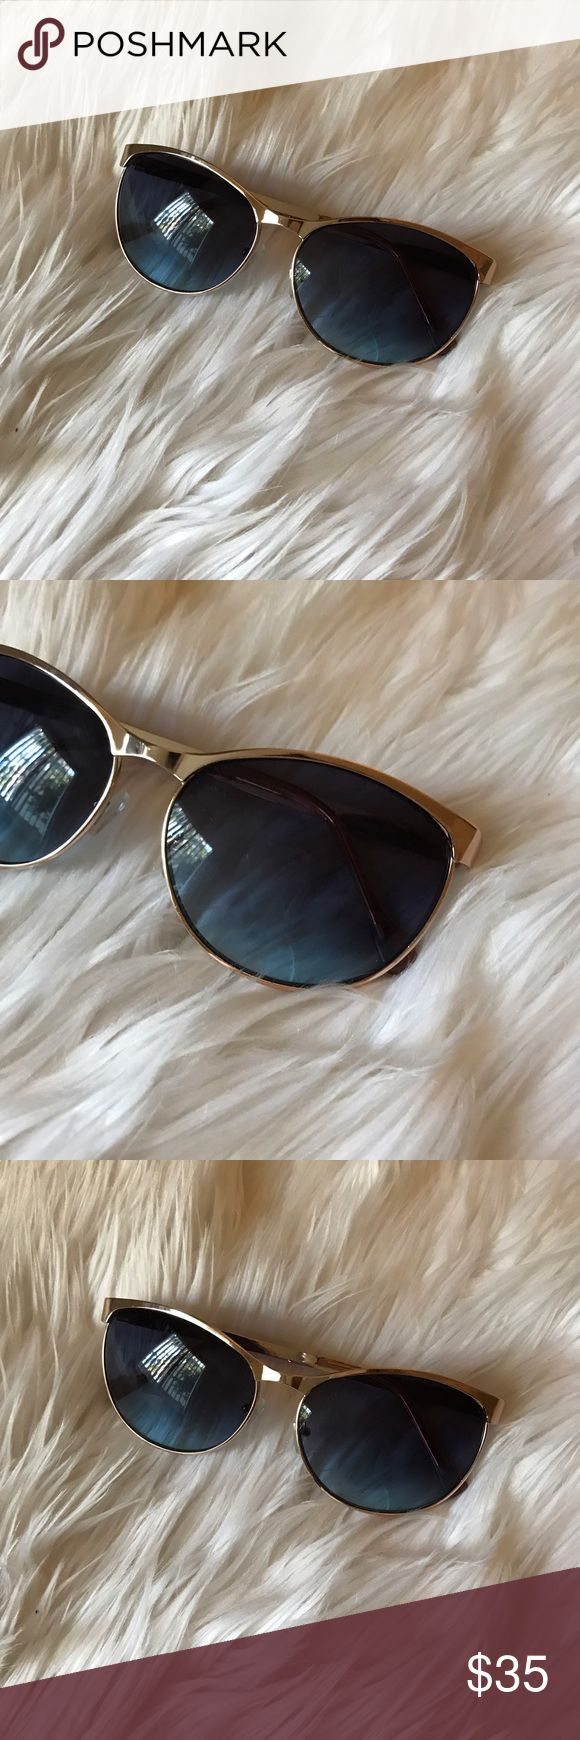 💠 Rose Gold Sunglasses New , tried on but not worn, no scratches, has blue like lenses and rose gold frame Jessica Simpson Accessories Sunglasses